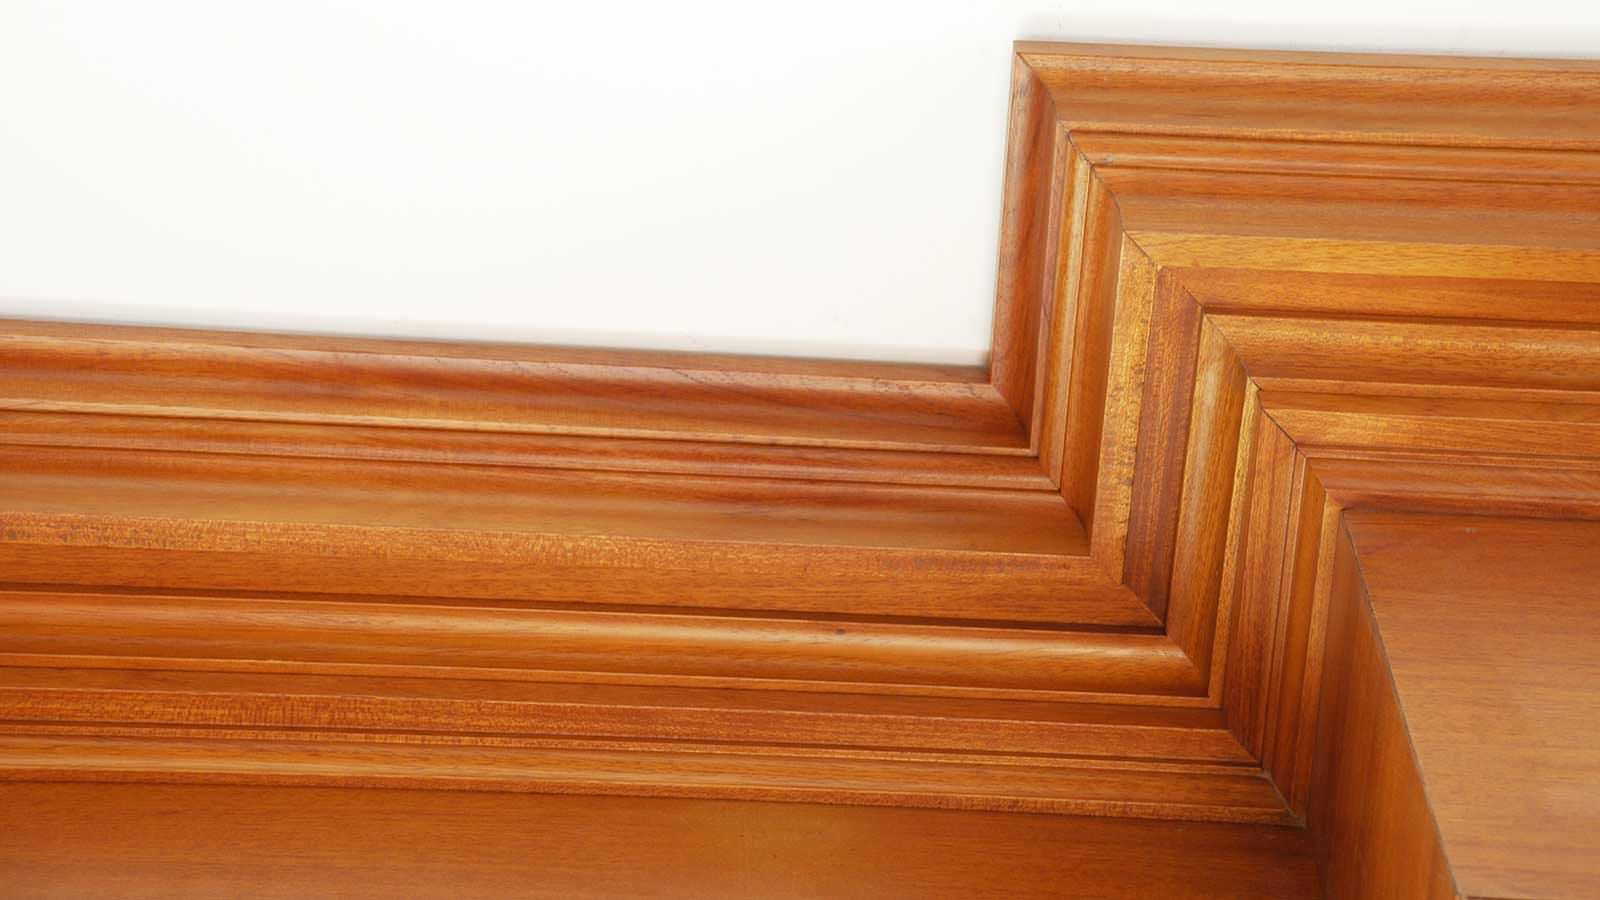 Detailed frame of special interior design, frame height of 32cm